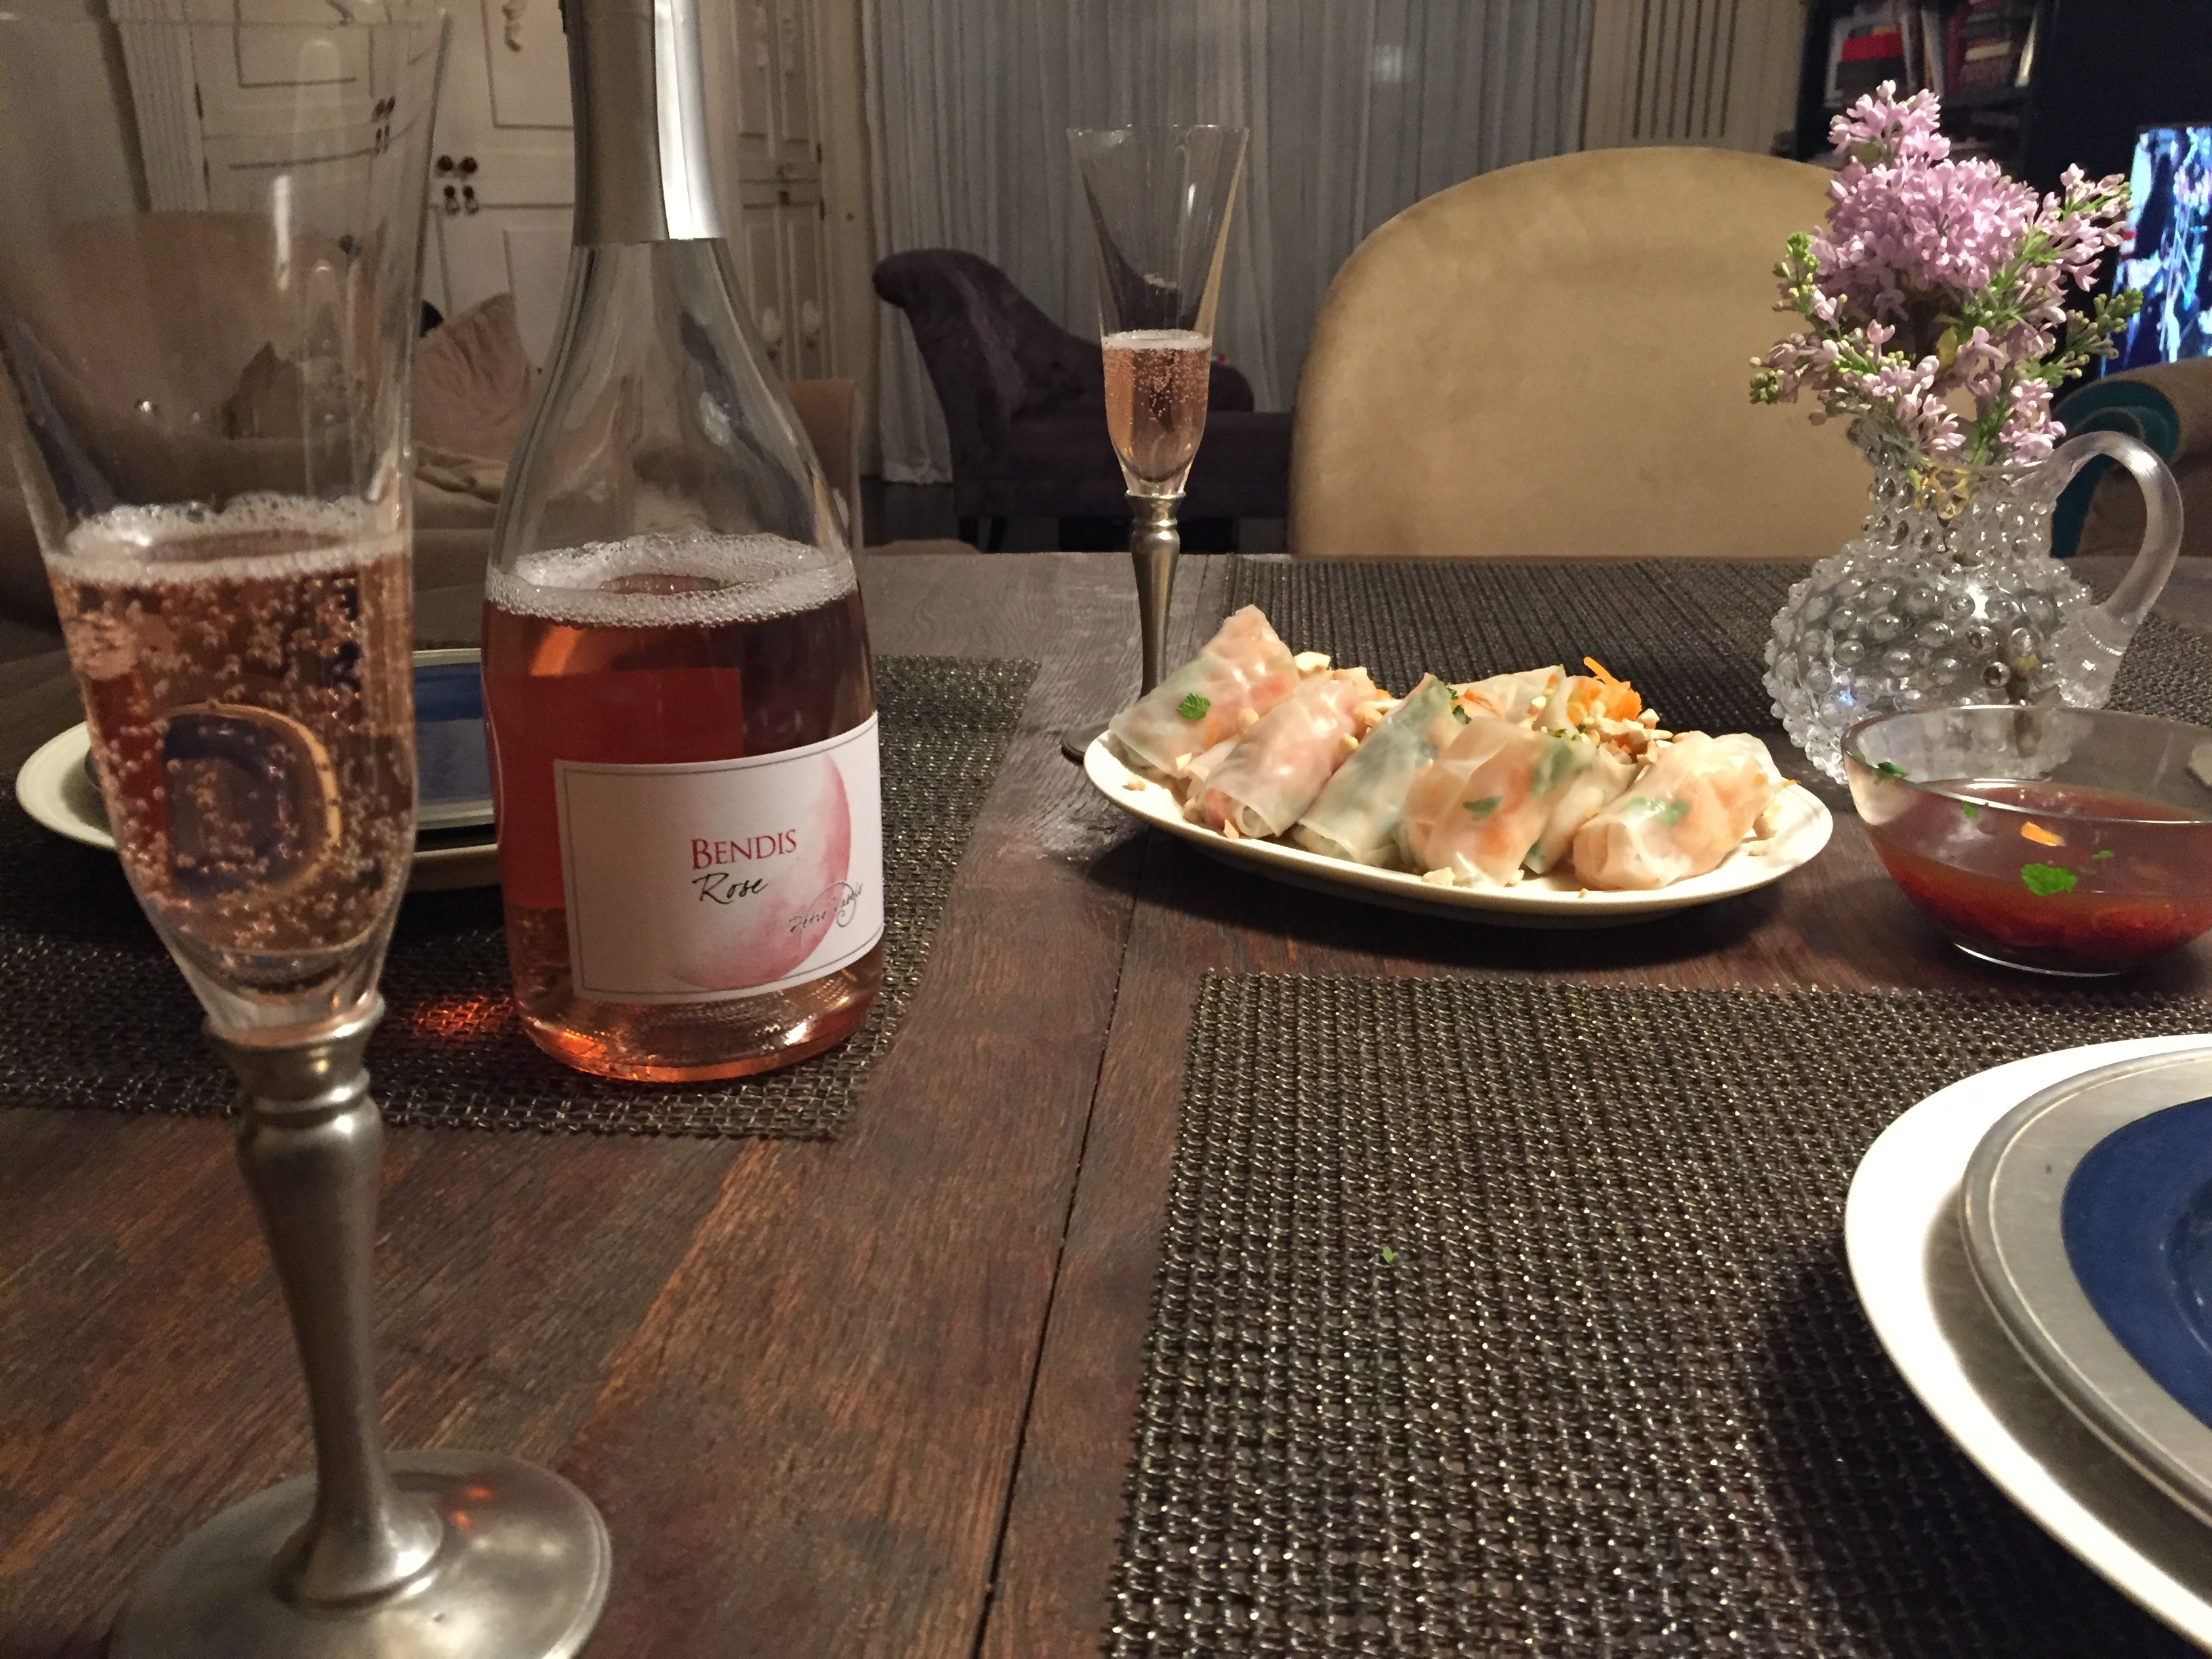 A romantic dinner – the appetizer